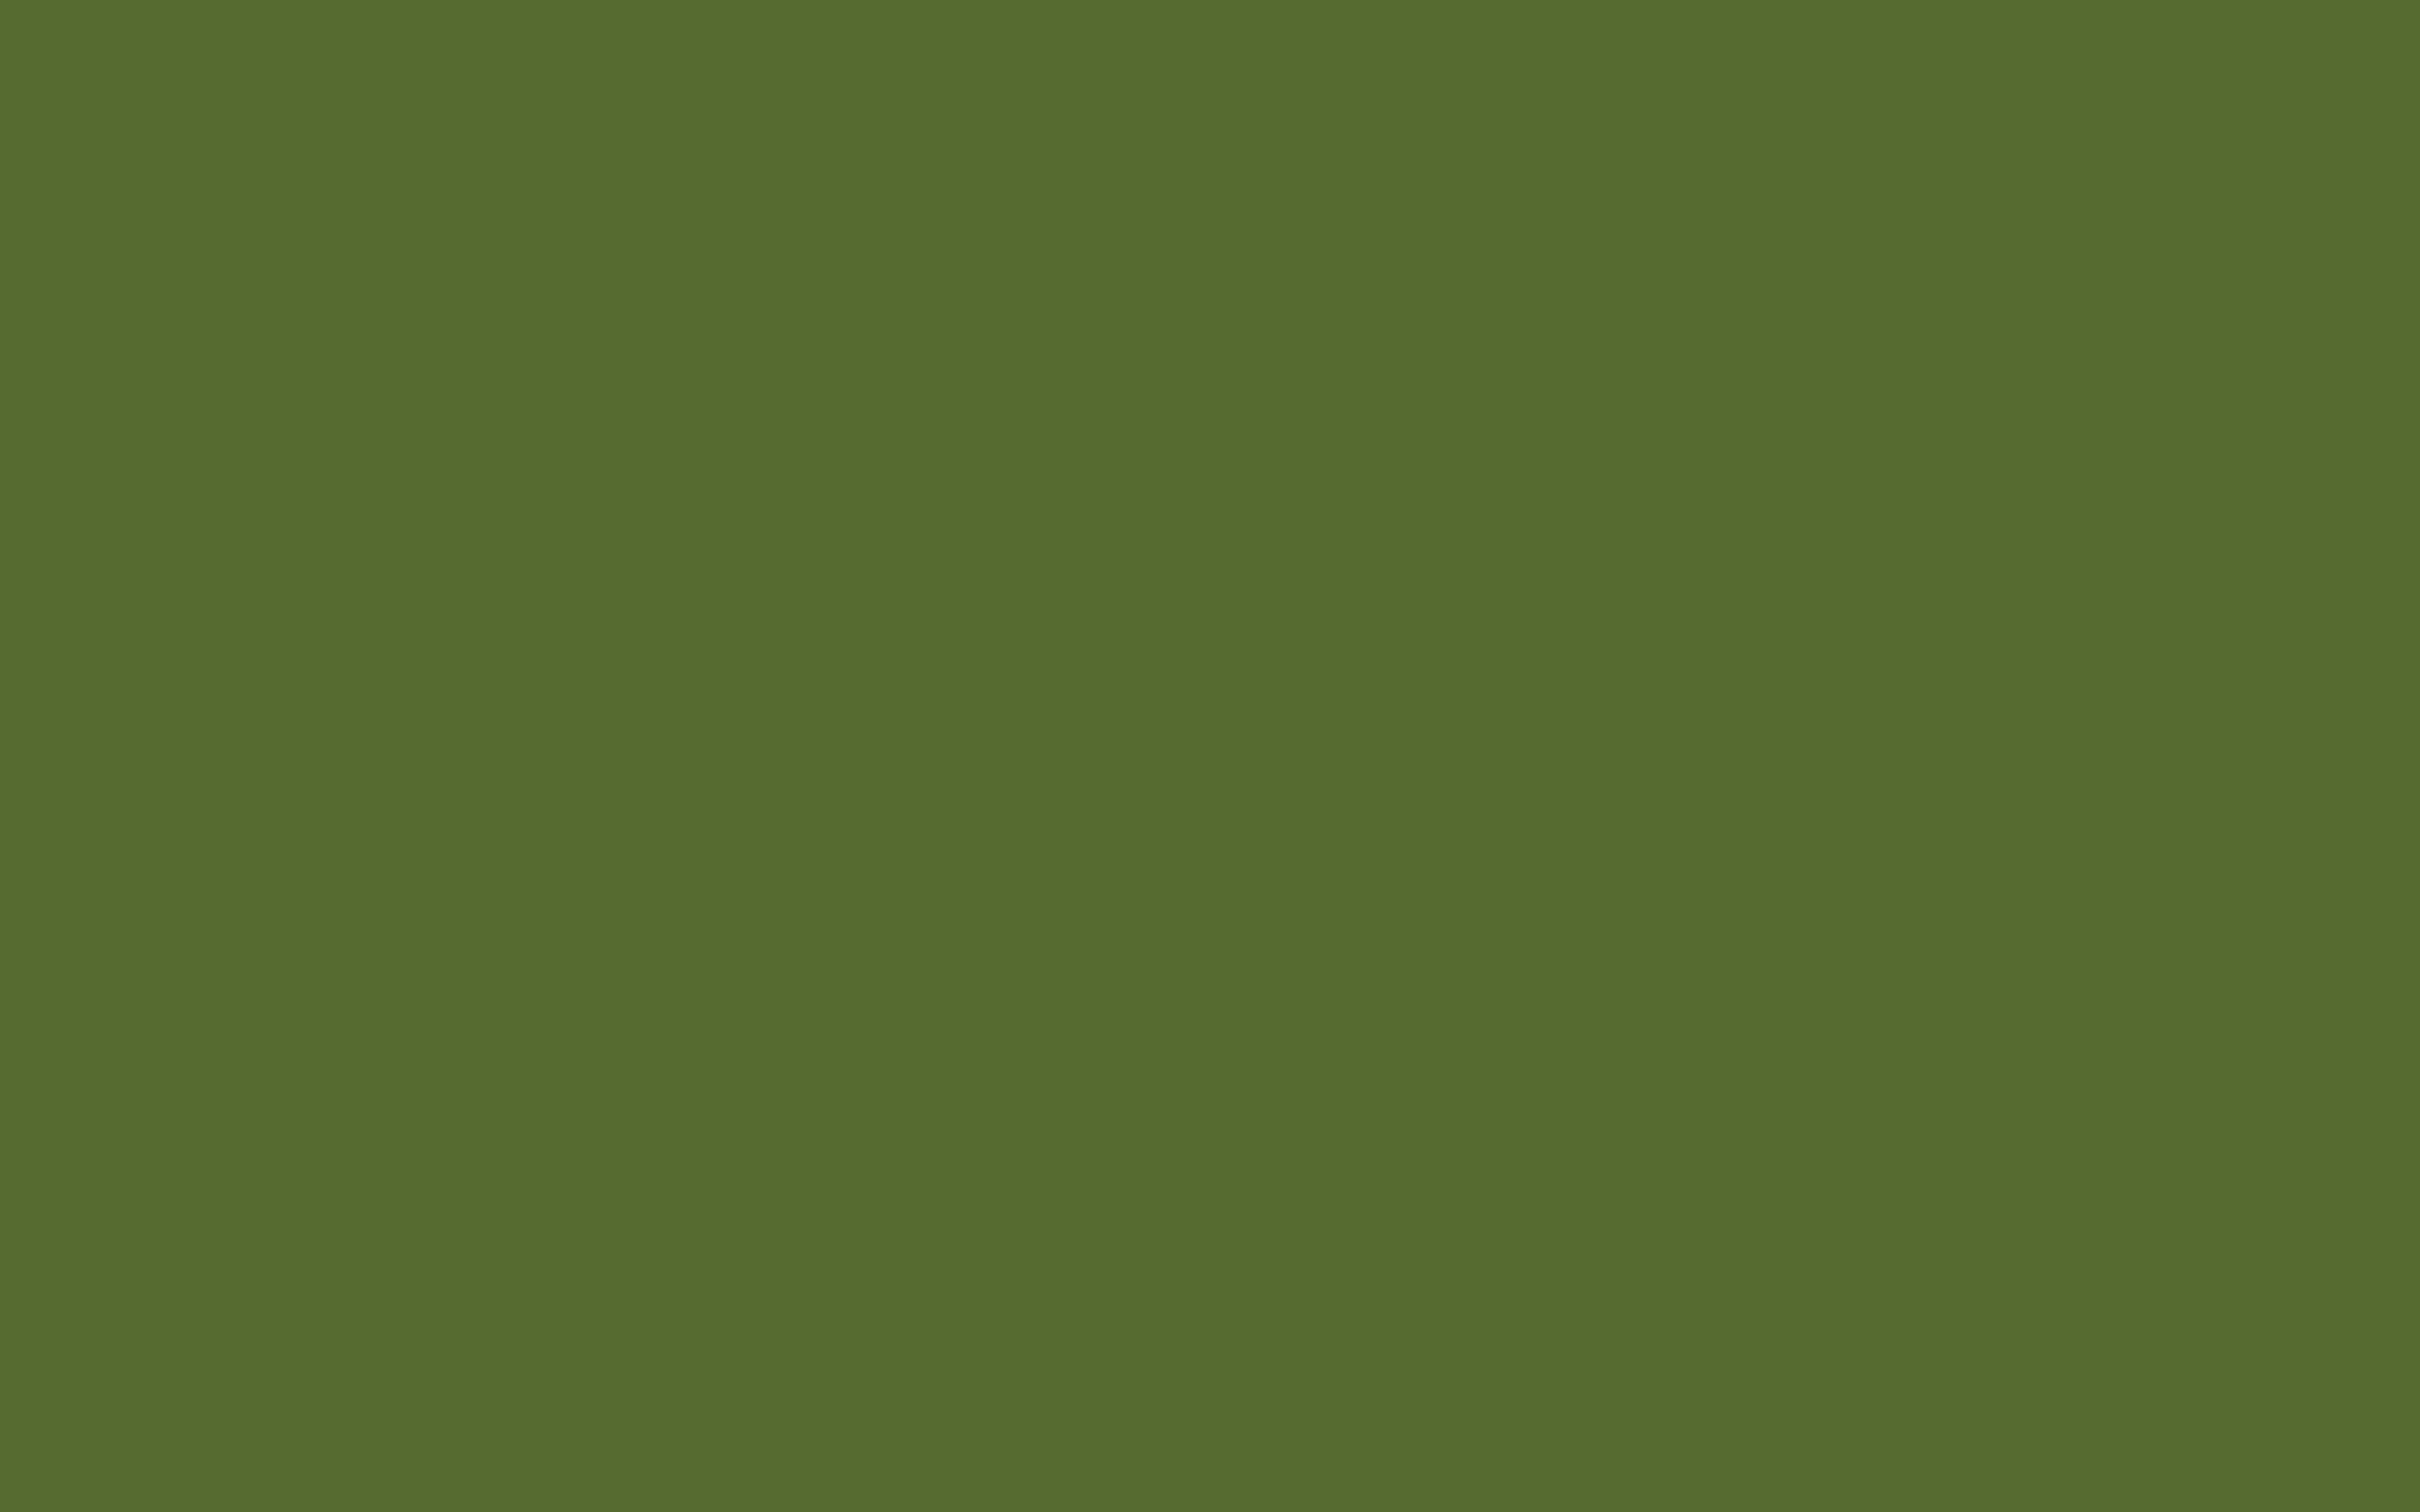 2560x1600 Dark Olive Green Solid Color Background